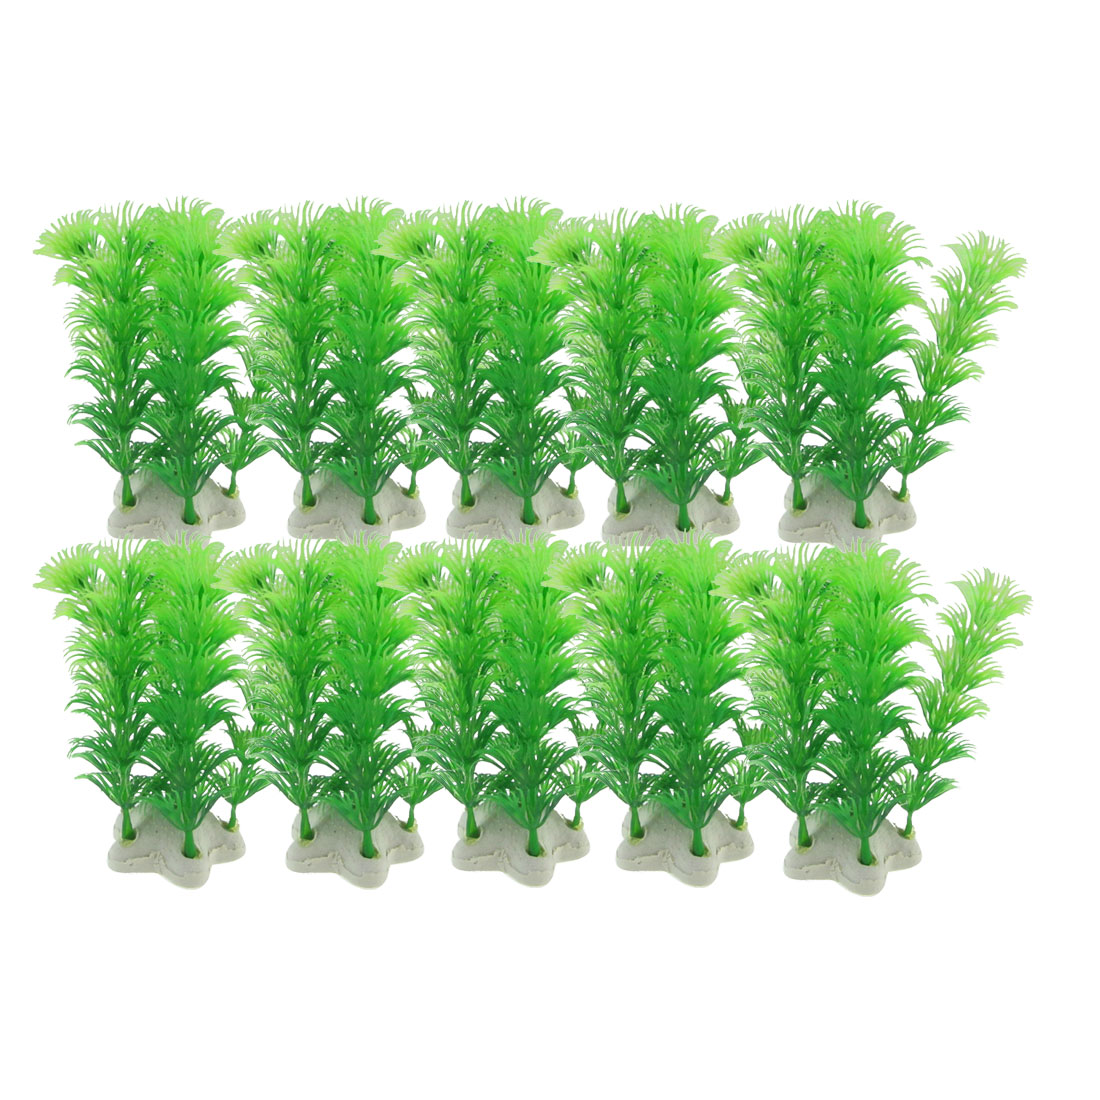 10-x-Fish-Tank-Ceramic-Base-Artificial-Green-Plastic-Plants-3-9-High